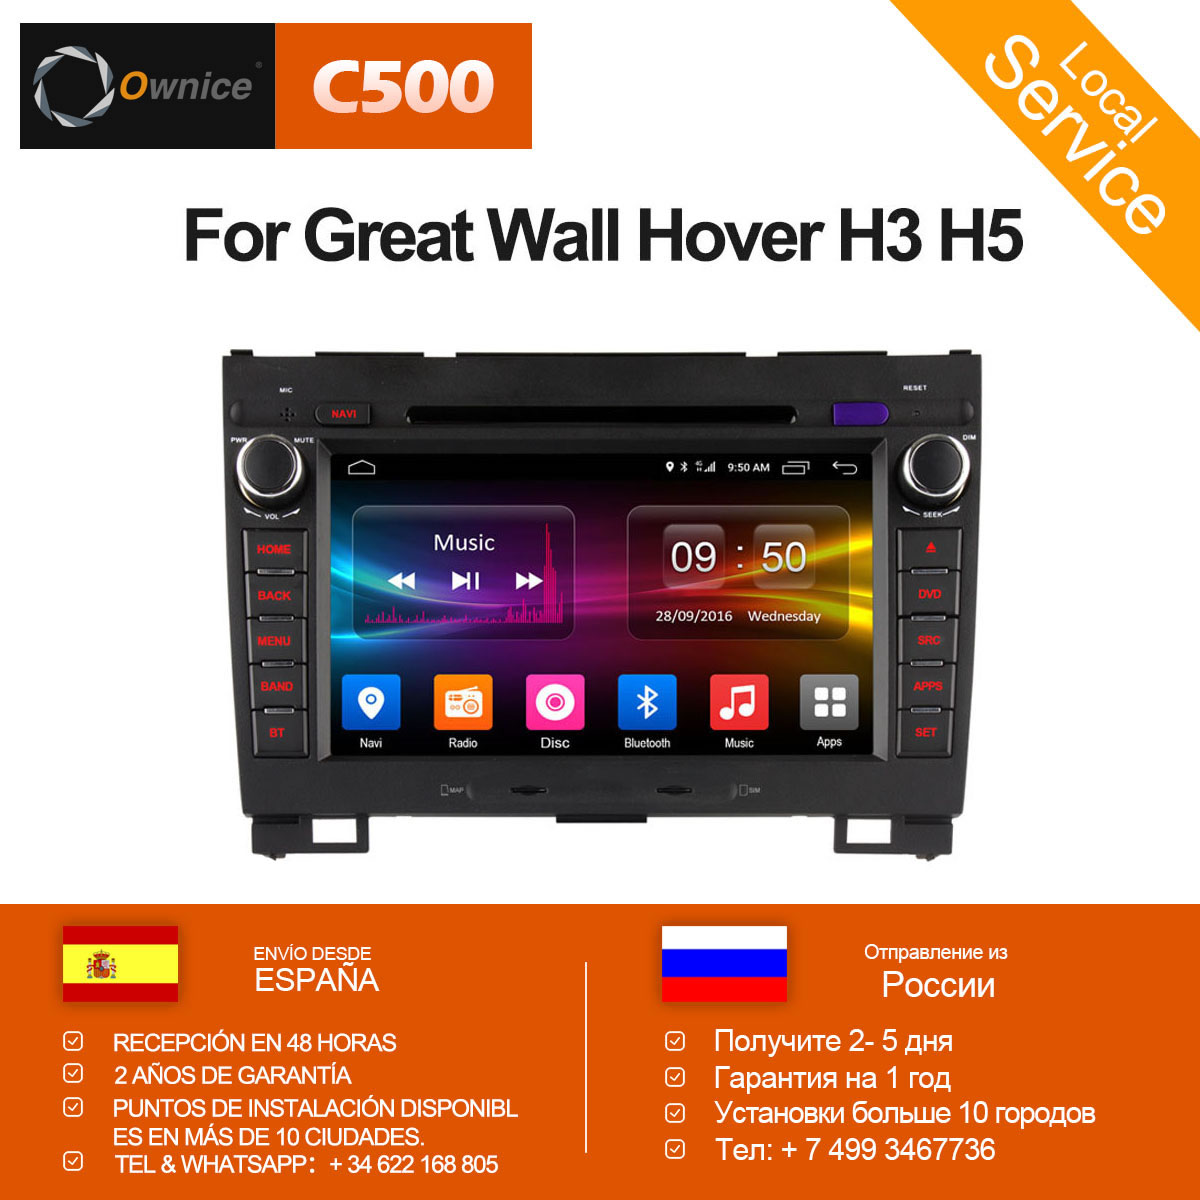 Ownice C500 4g LTE SIM Android 6.0 Quad Core dvd player Do Carro para Greatwall Haval Hover H5 H3 gps navi Rádio WI-FI 32 2 gb RAM gb